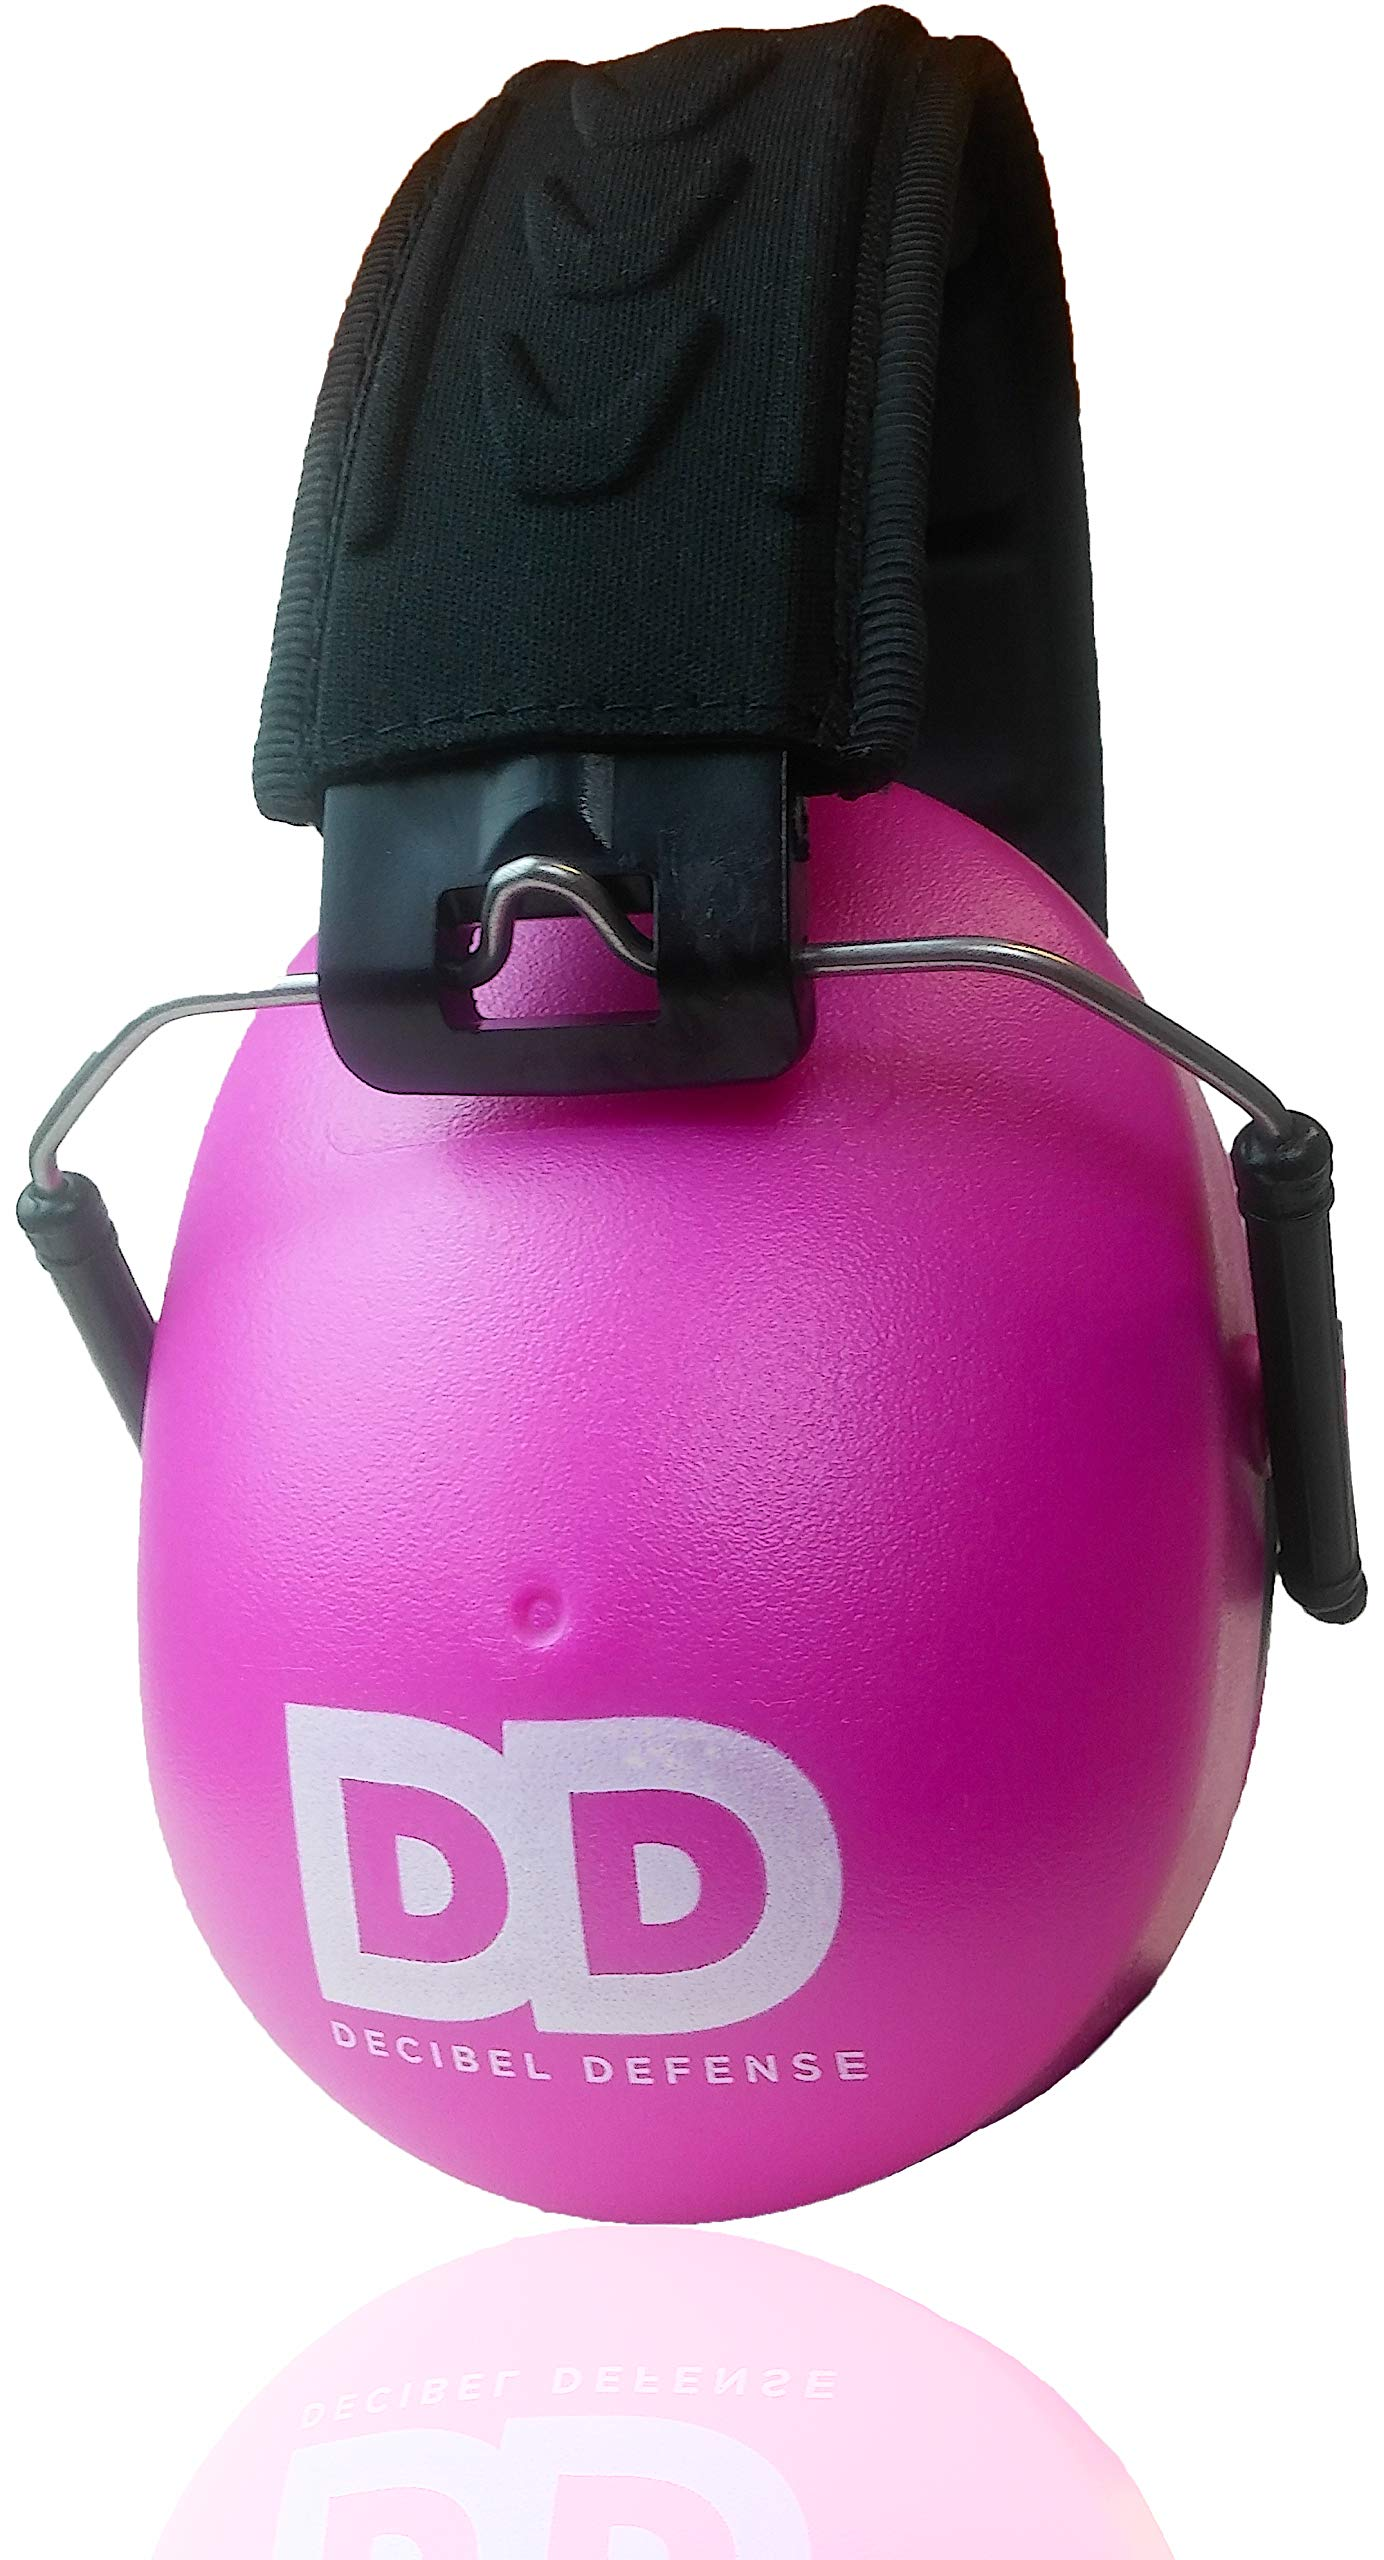 Professional Safety Ear Muffs by Decibel Defense - 37dB NRR - The HIGHEST Rated & MOST COMFORTABLE Ear Protection For Shooting & Industrial Use - THE BEST HEARING PROTECTION GUARANTEED! (PINK) by DECIBEL DEFENSE